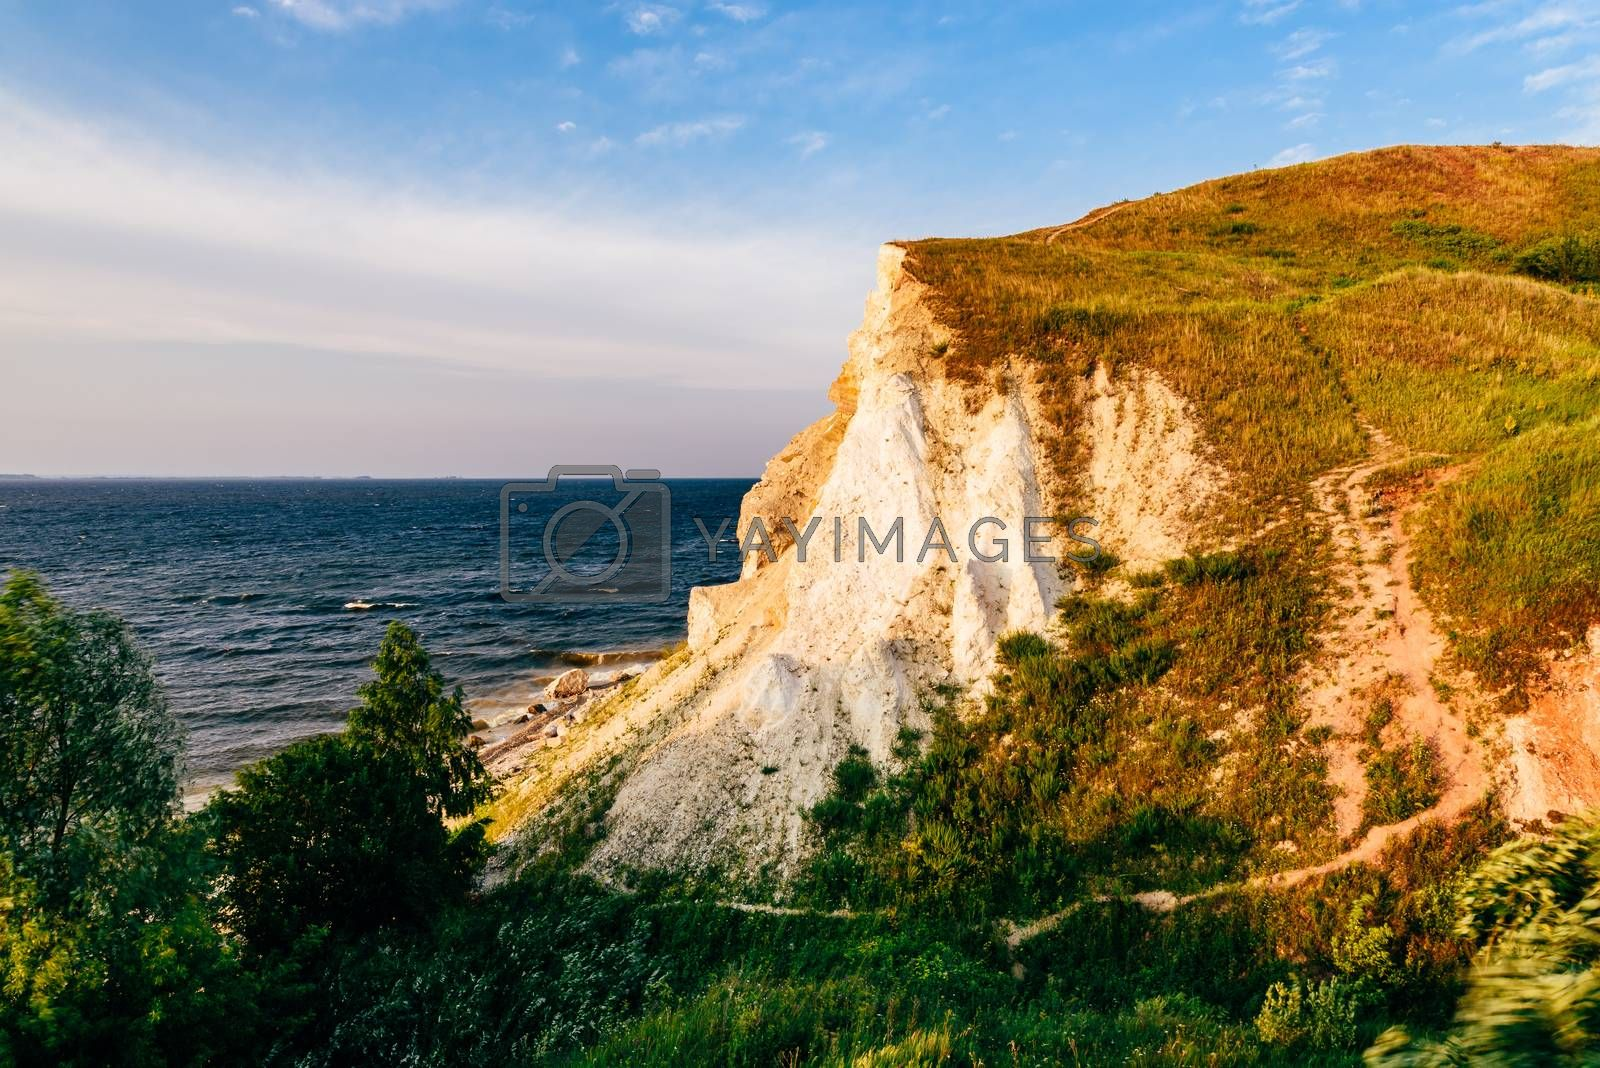 Landscape of a cliff next to the river by Seva_blsv